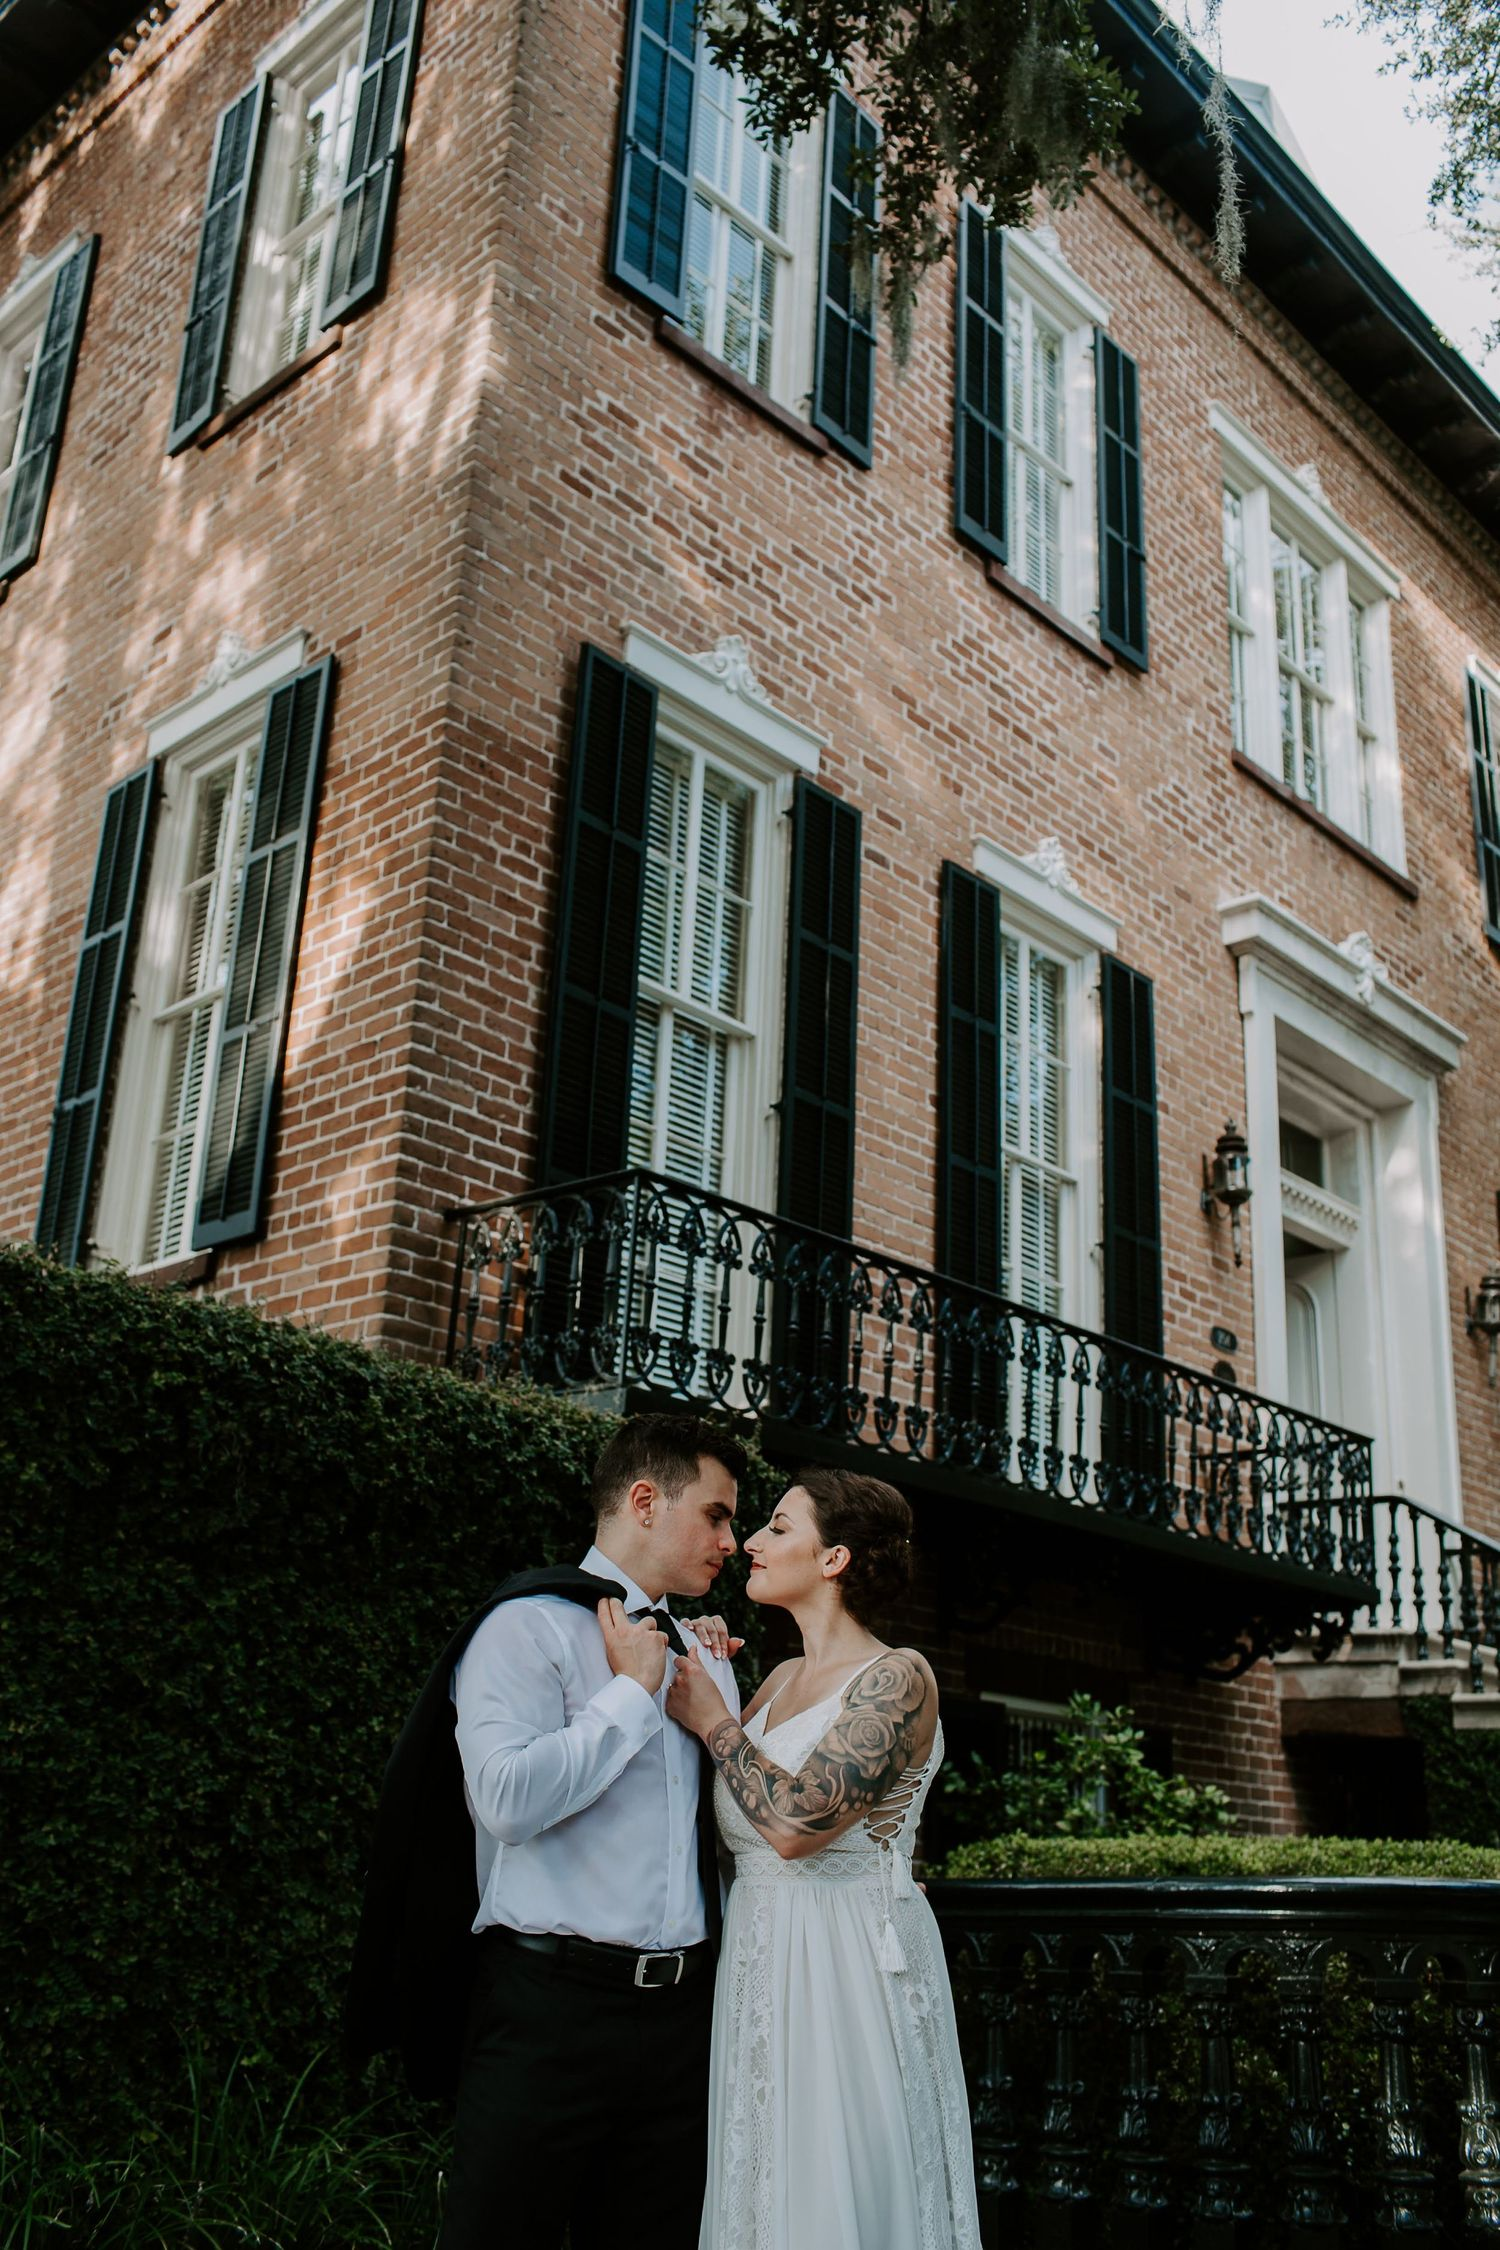 couple embracing in front of antebellum architecture during their Savannah, Georgia elopement